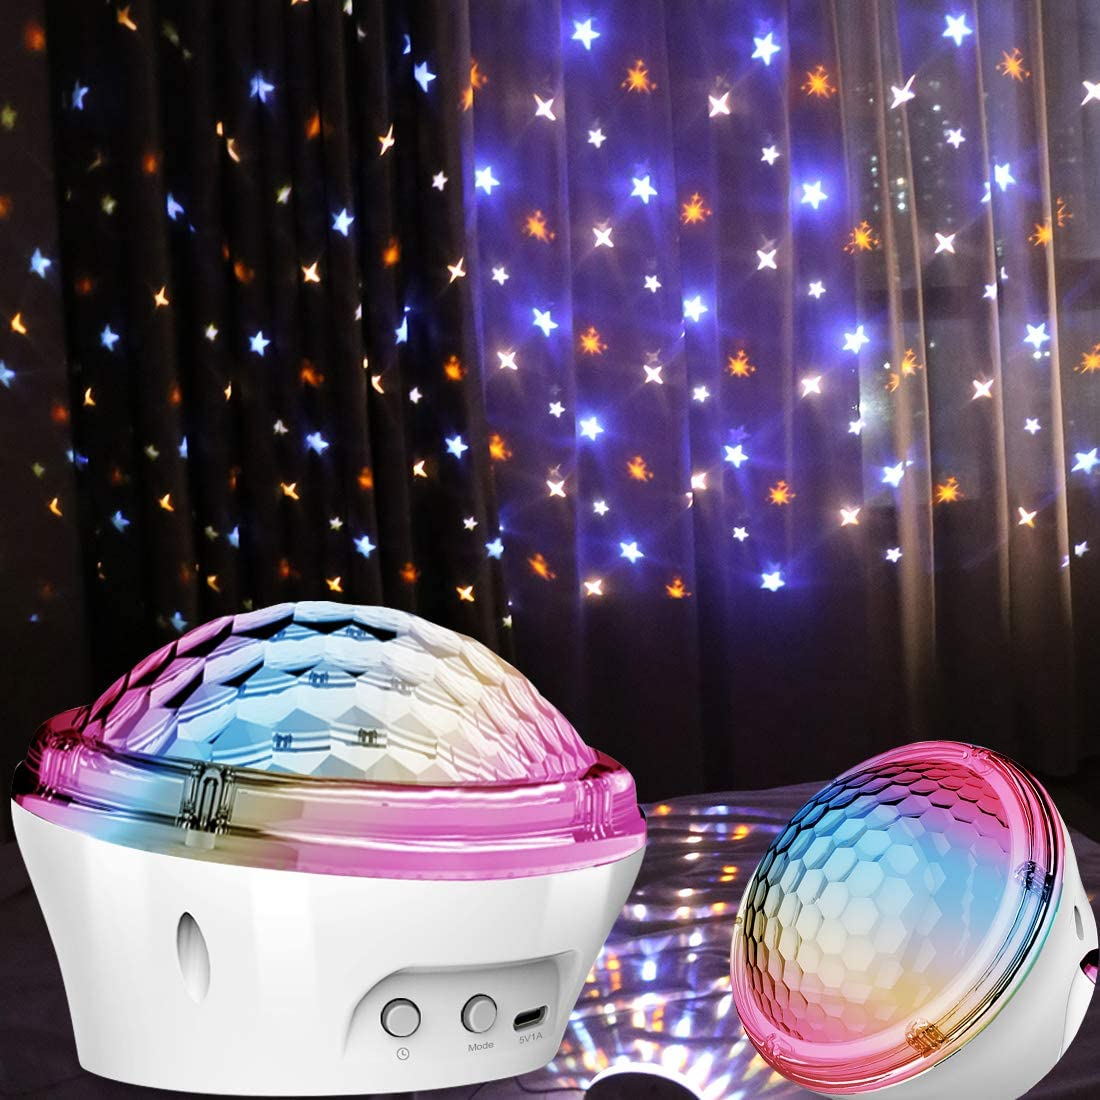 Star Projector Night Light, Starry Night LED Lights for Bedroom Room with 4 Modes and Timer Setting, Best Gift Choice for Kids Baby Children Women Men Indoor